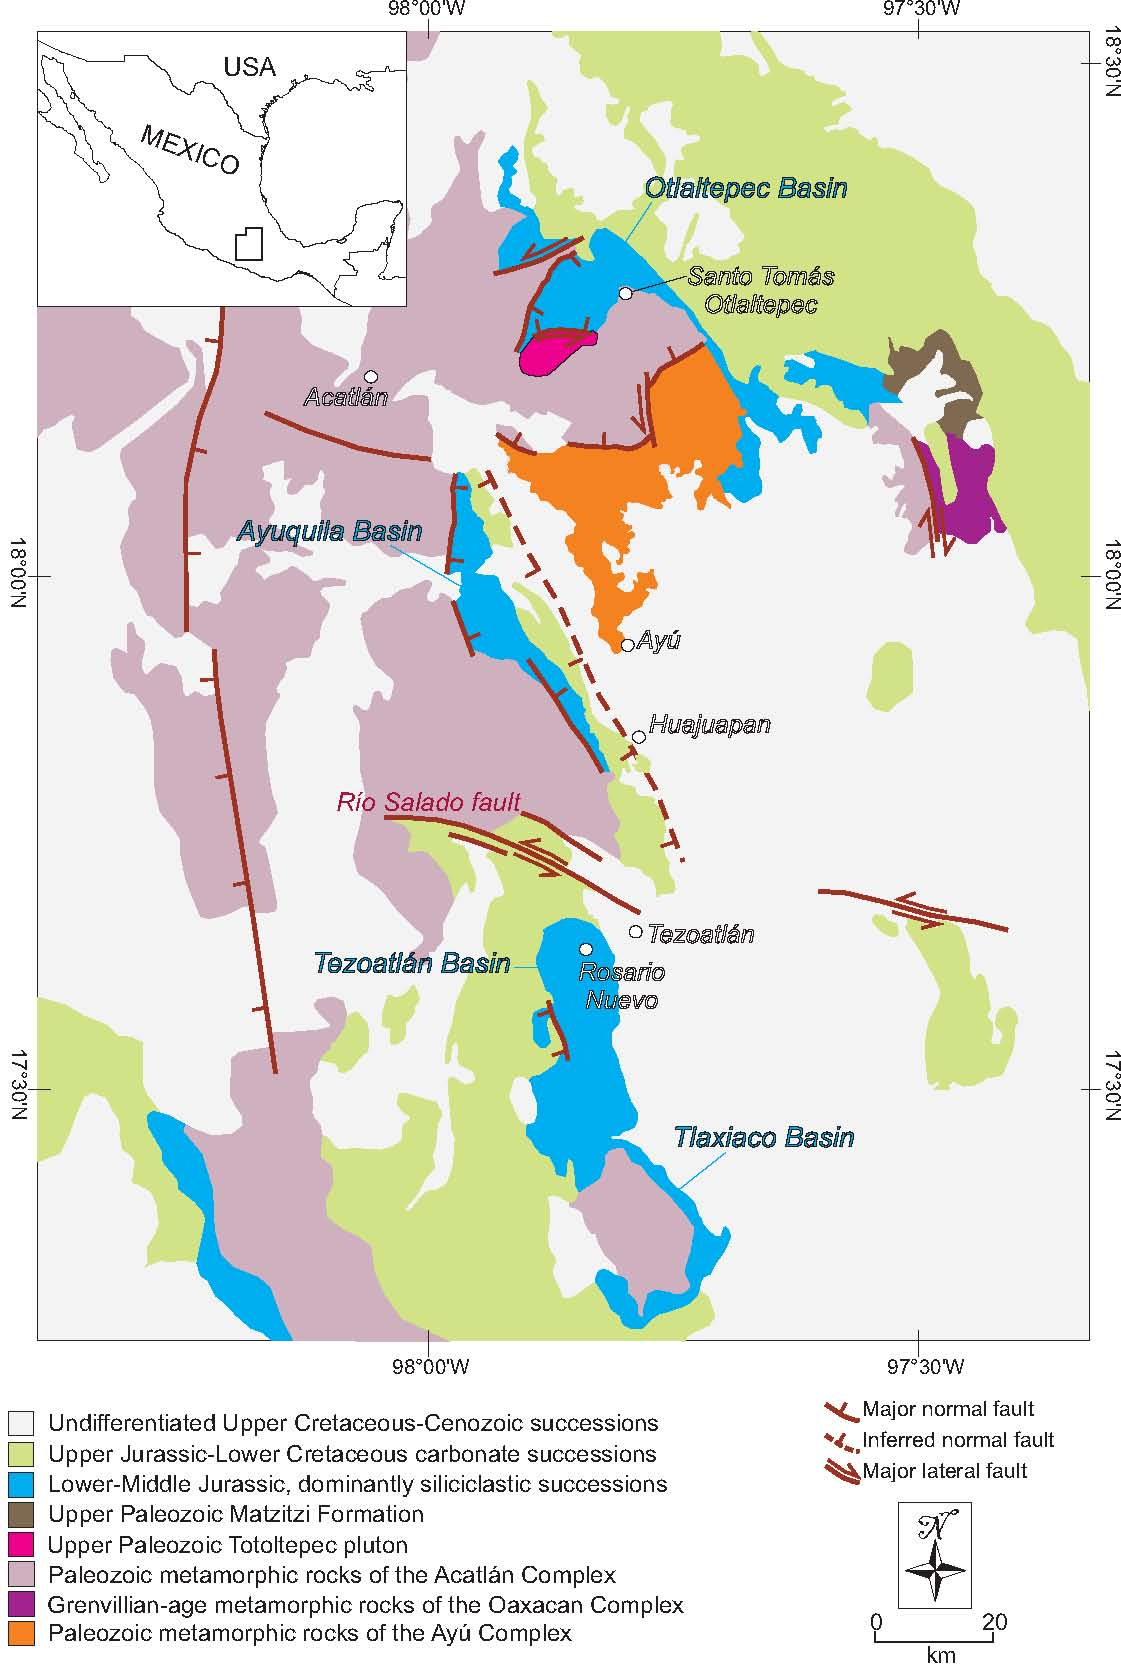 figure 1 imagesepoca046903 geologic map of the southern puebla and northern oaxaca states southern mexico showing the location and tectonic boundaries